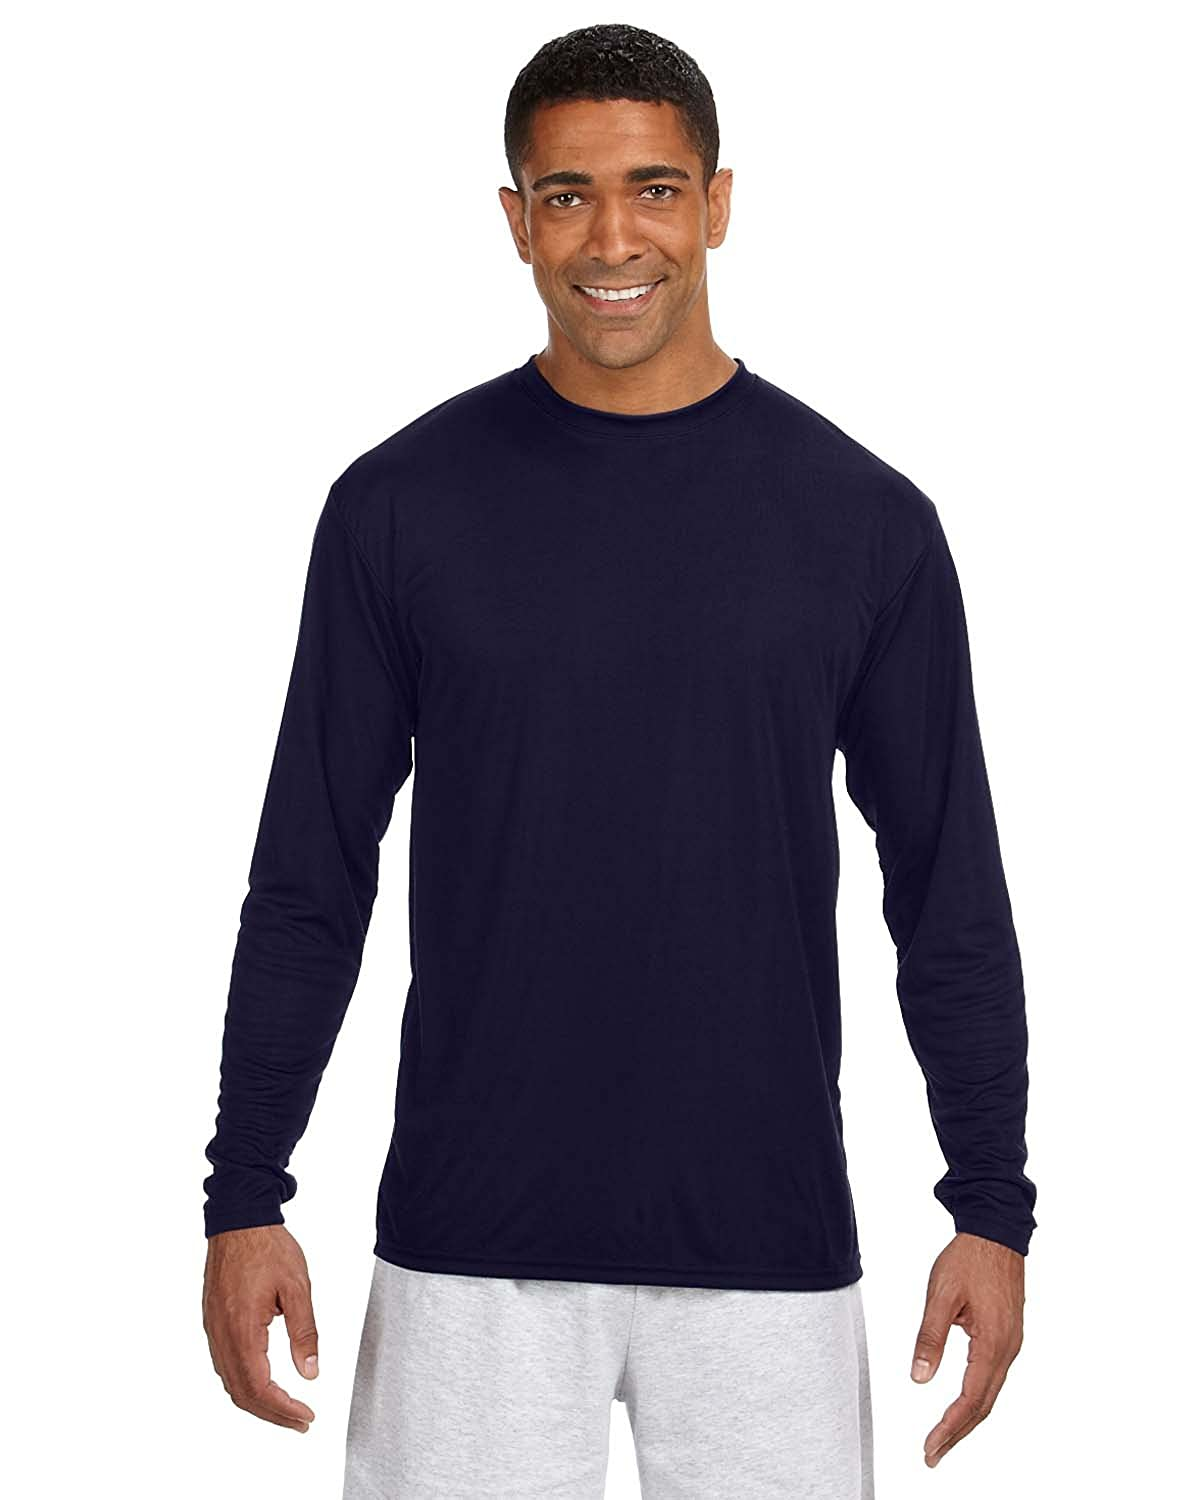 A4 N3165 Adult Cooling Performance Long Sleeve Tee